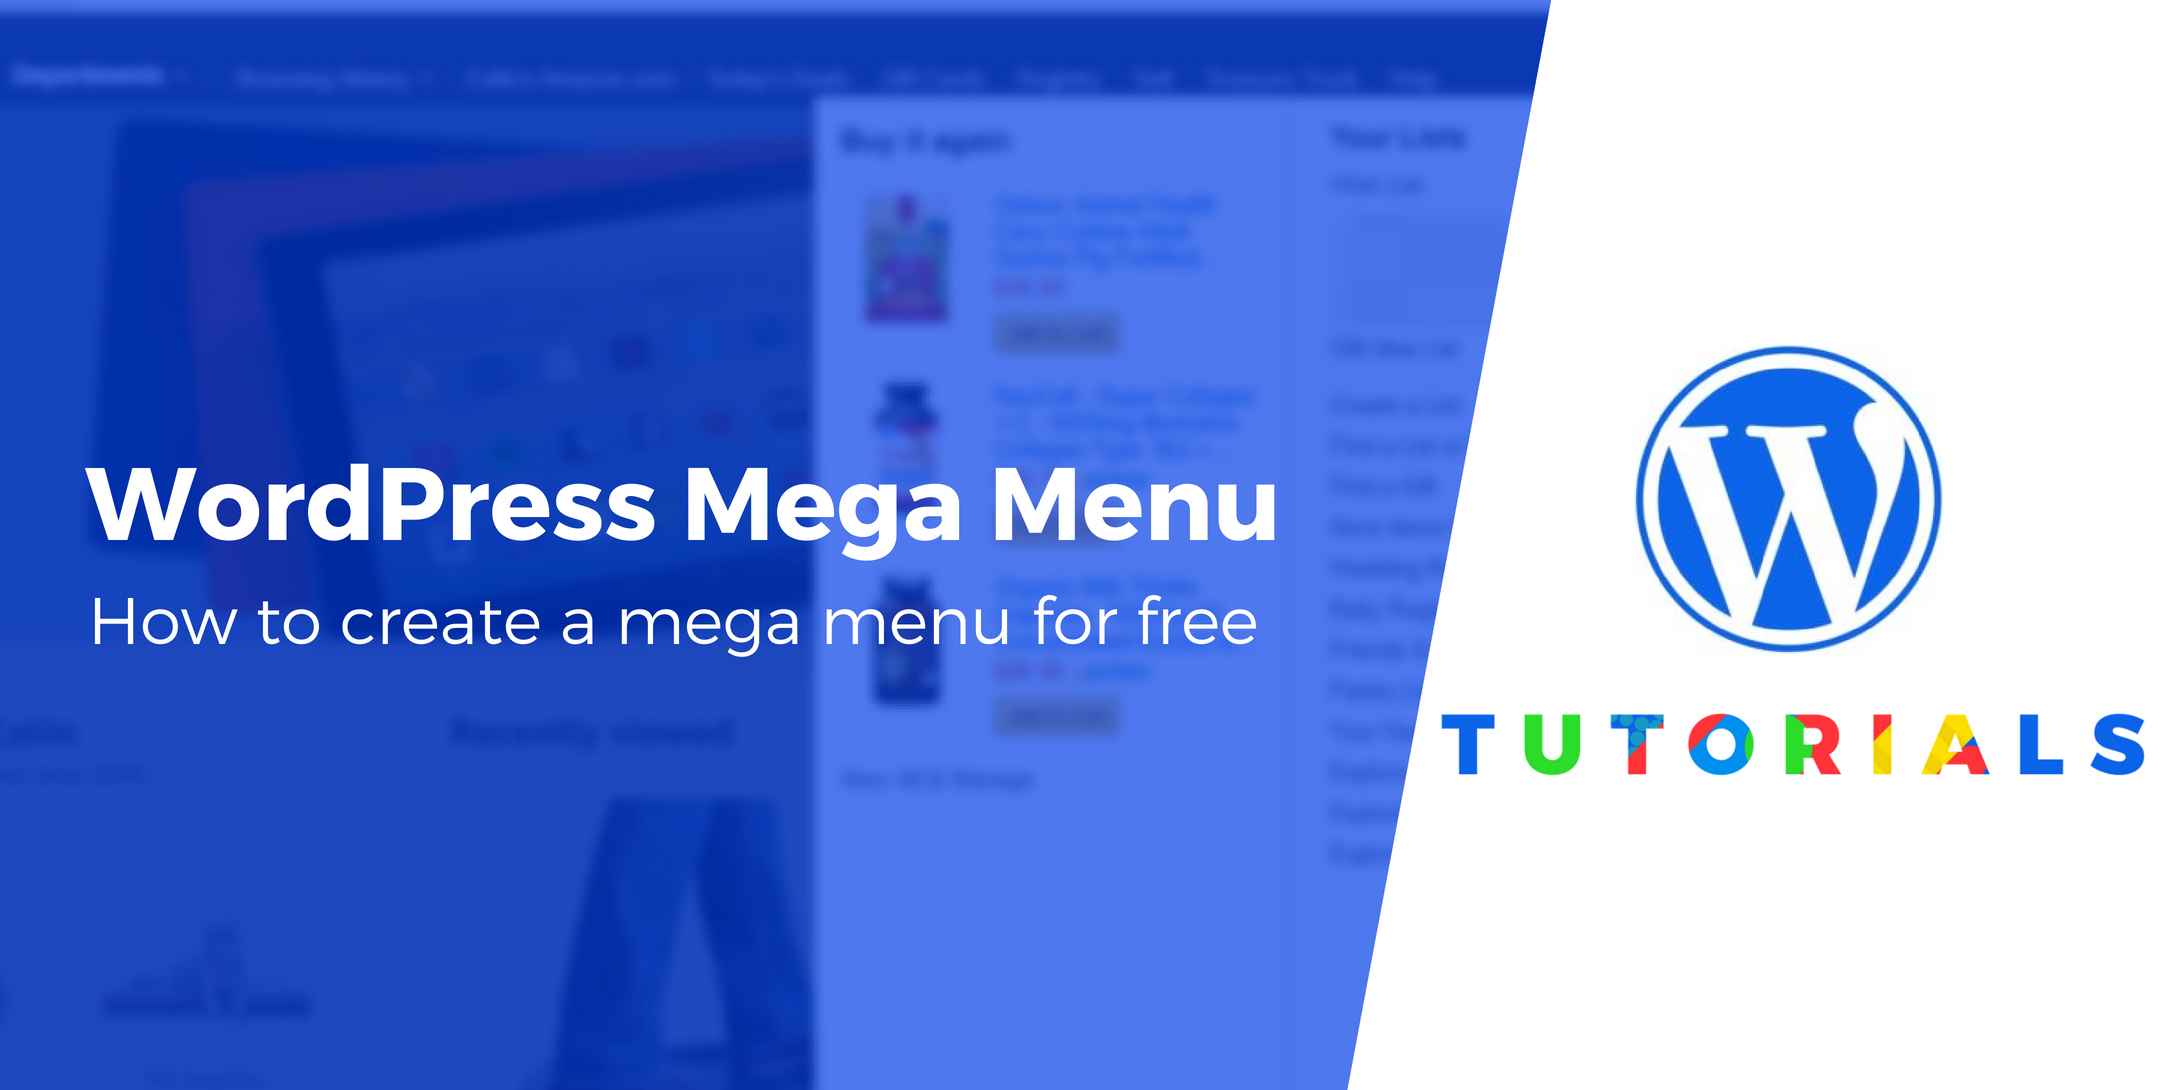 WordPress Mega Menu